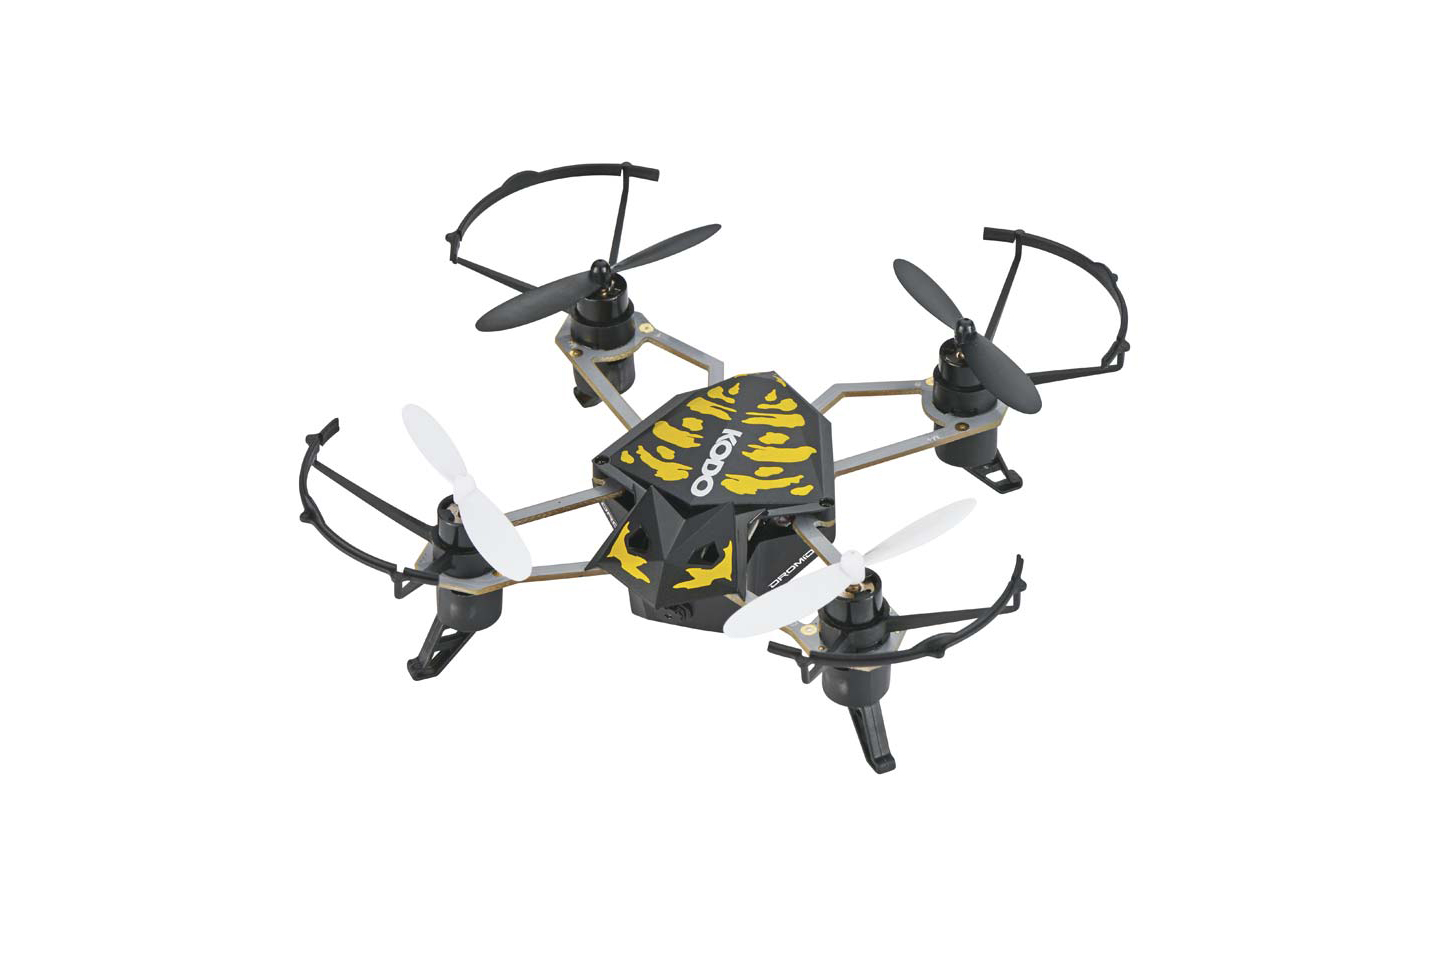 Dromida Kodo Camera Equipped Quadcopter for $59.99!